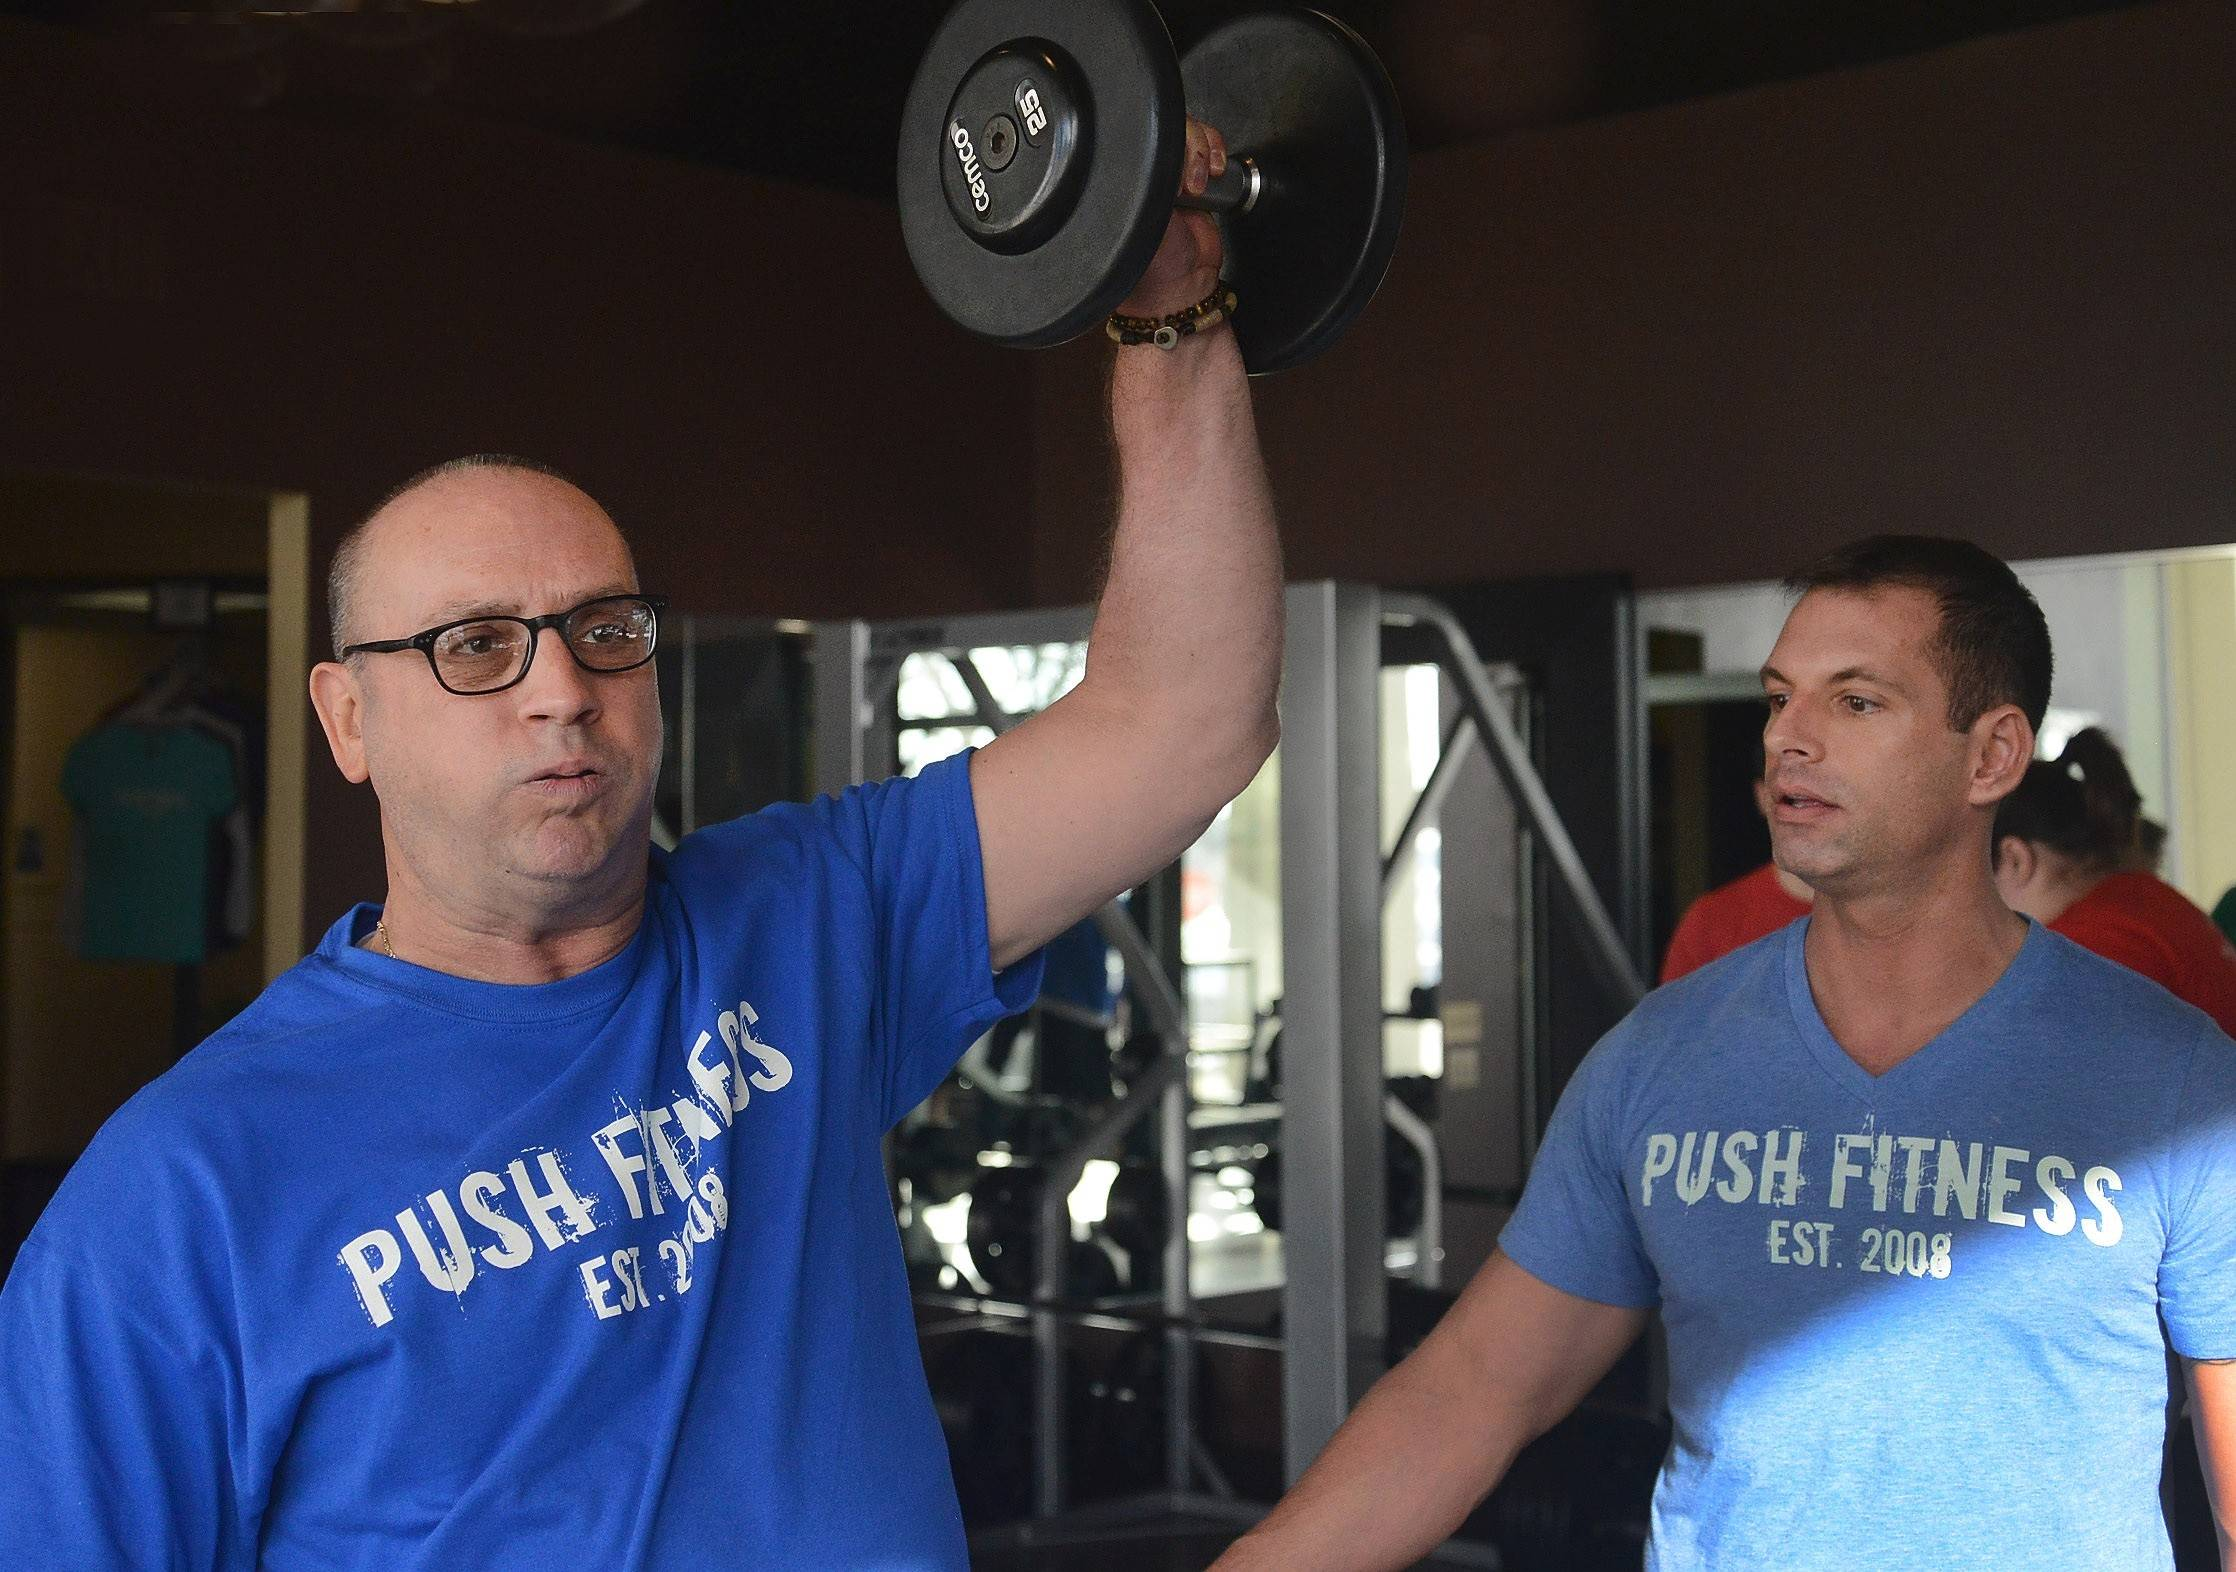 Contestant Tim Lange, left, works out with his trainer, Steve Amsden.